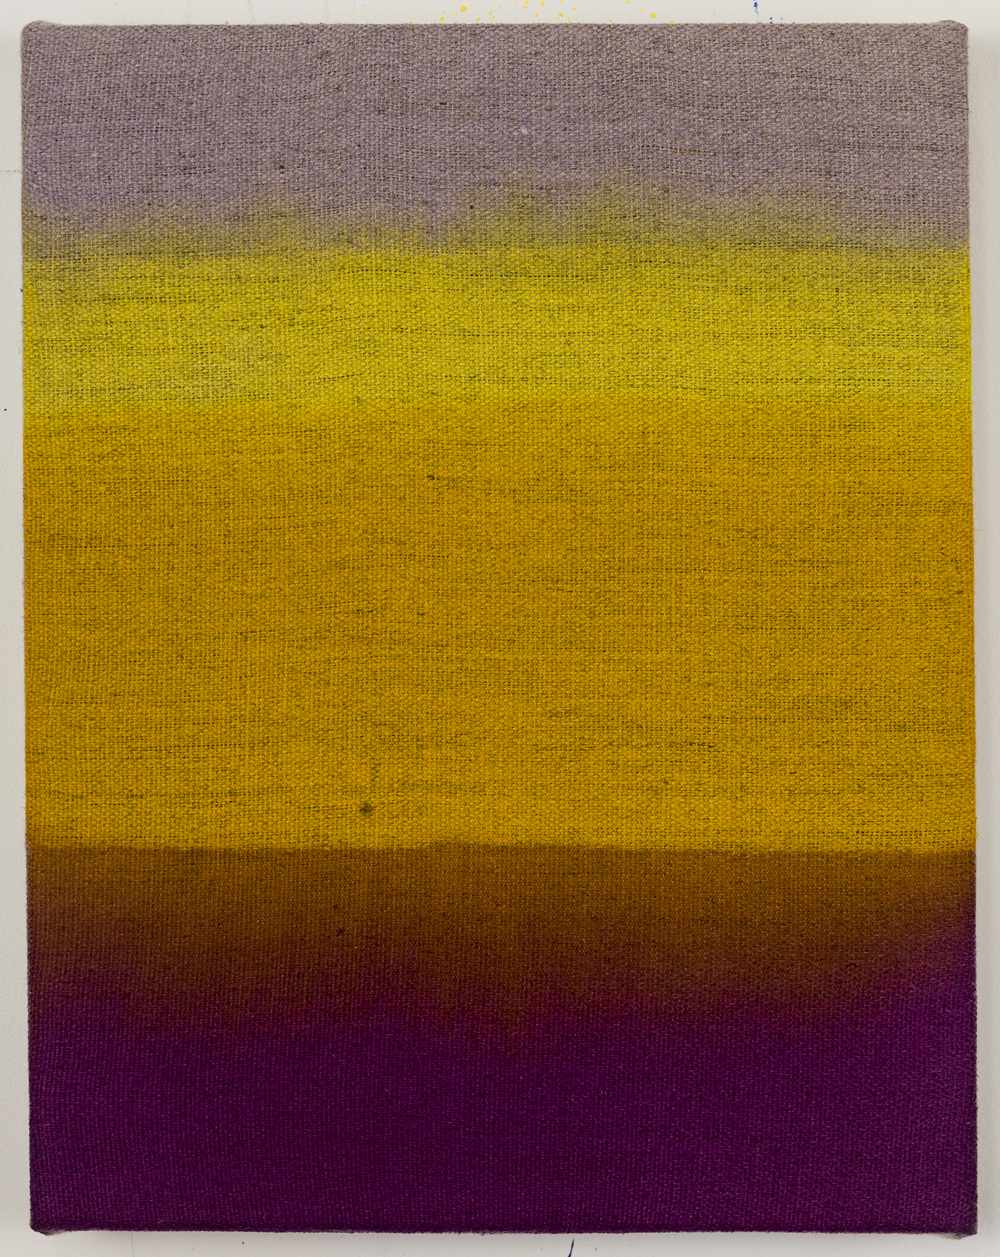 "Horizon 1, acrylic stain on raw linen, 14"" x 11"", 2017"